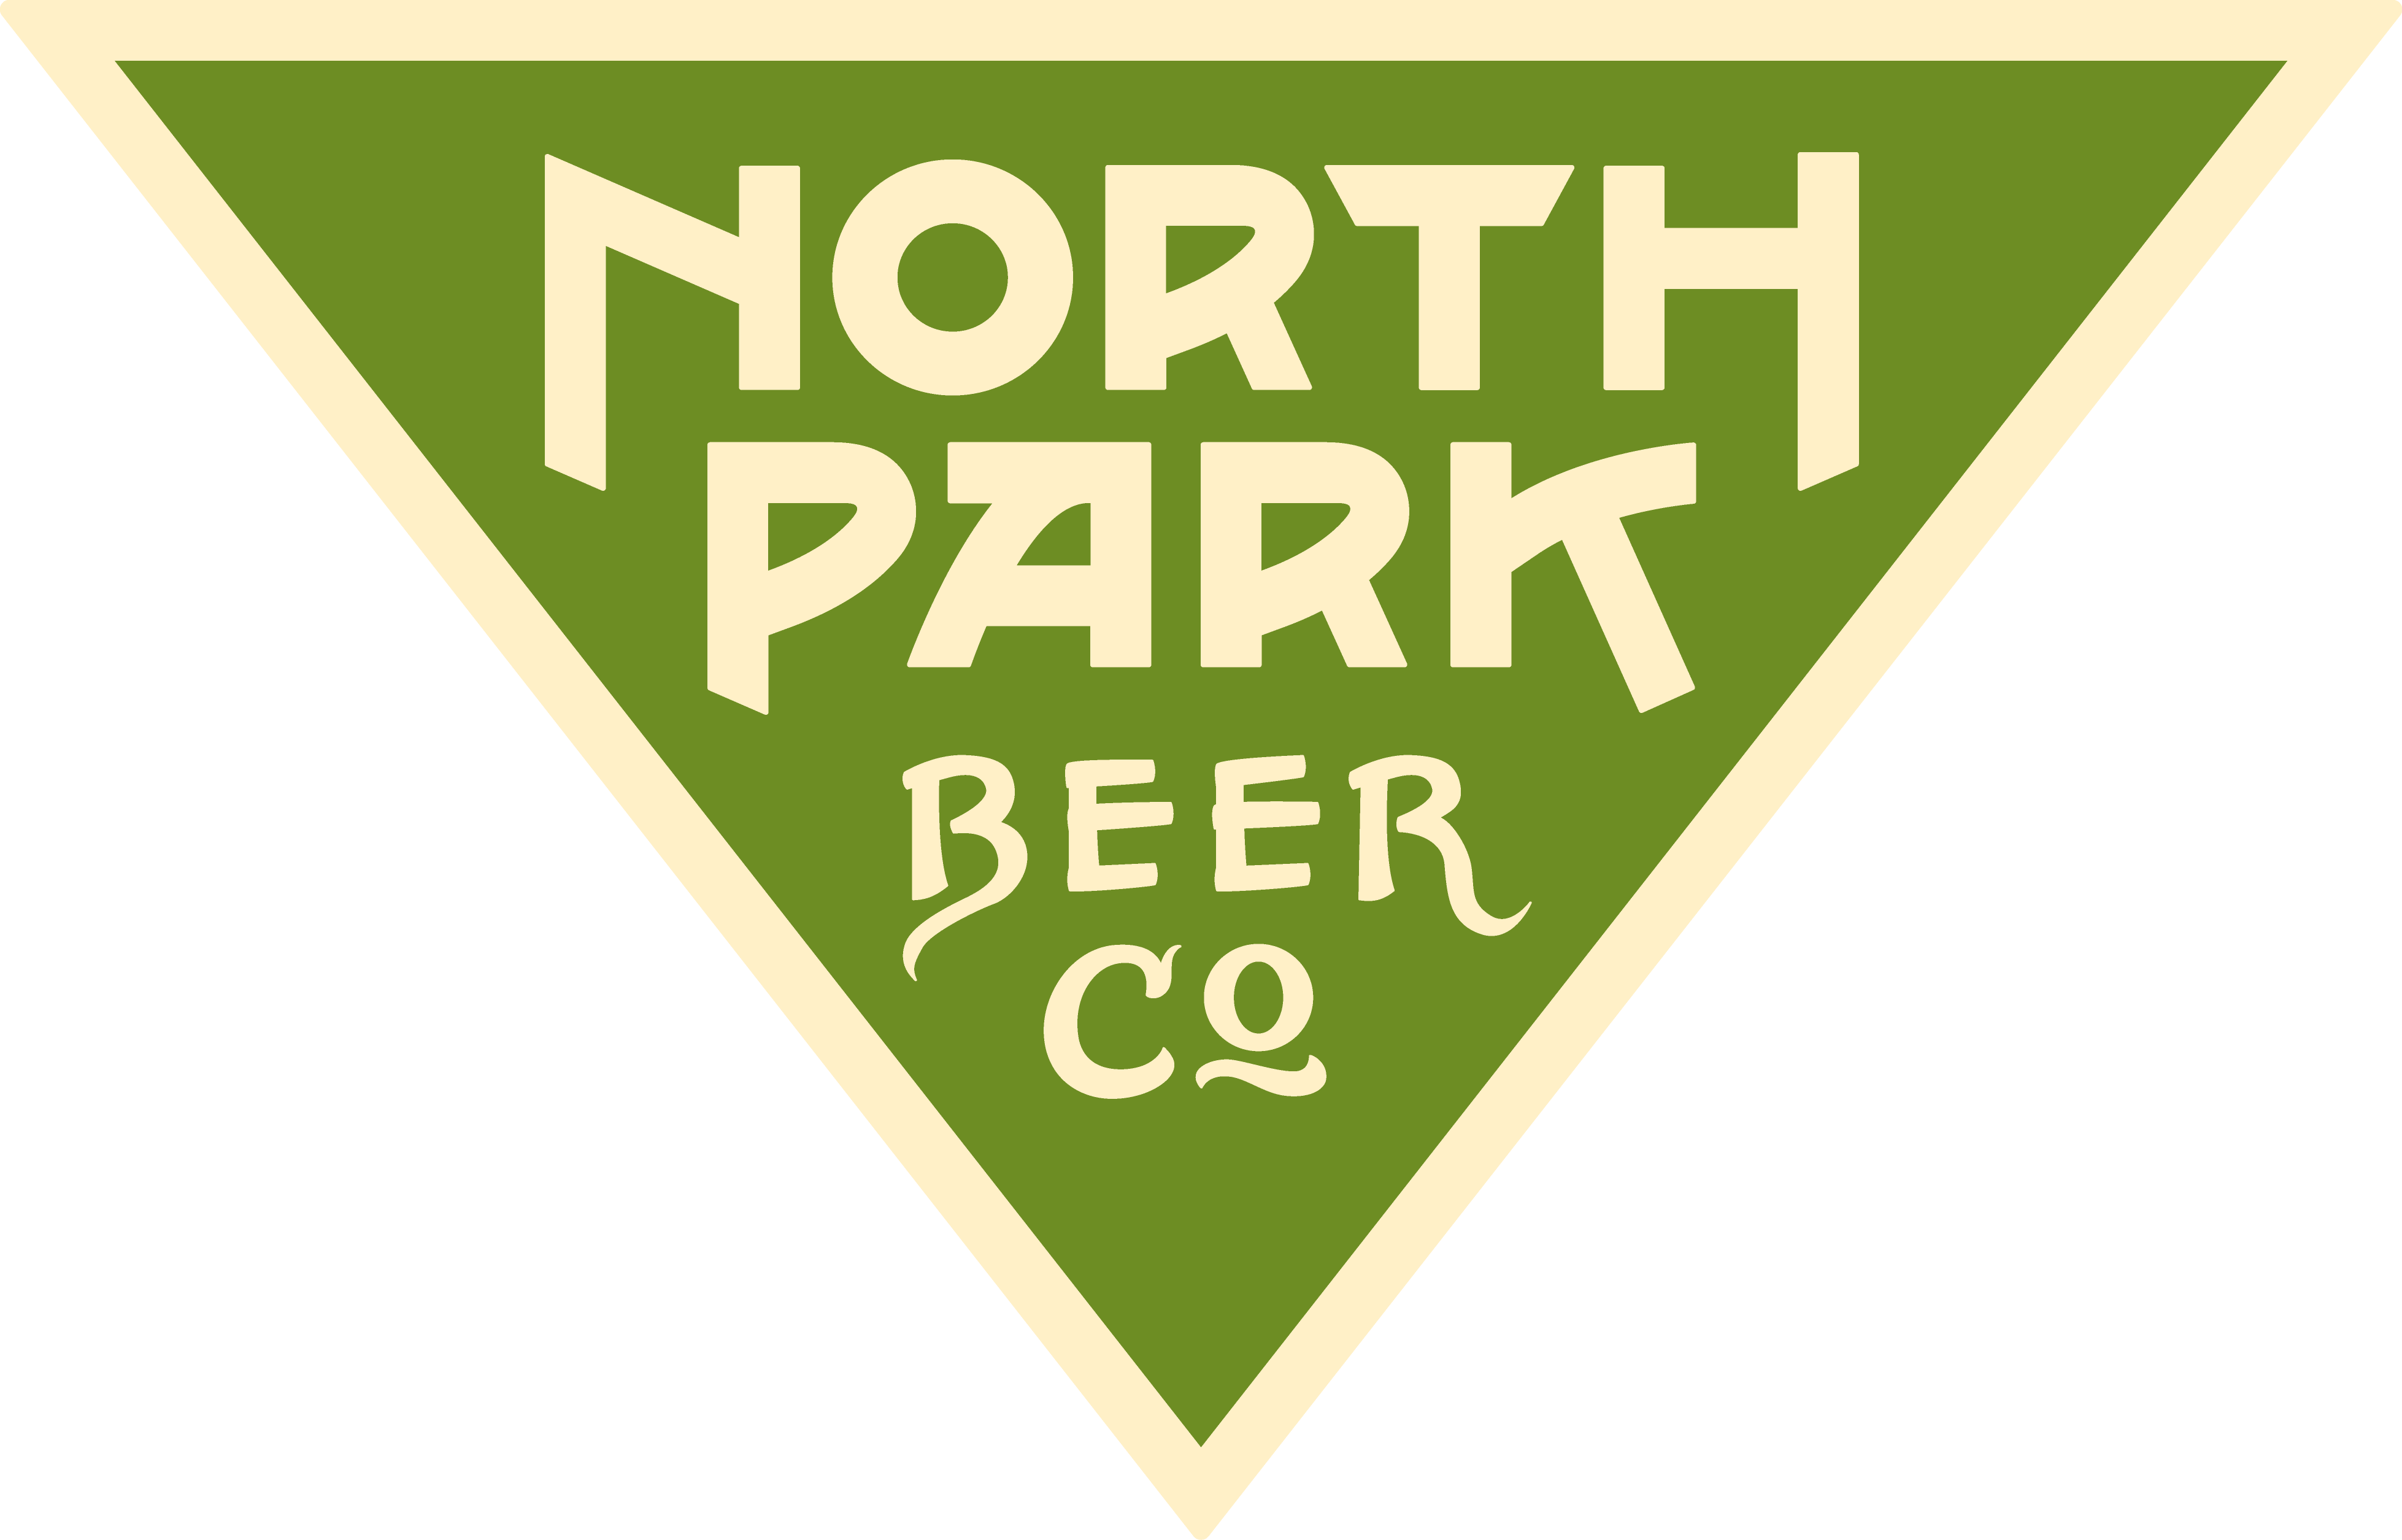 North Park Beer Company